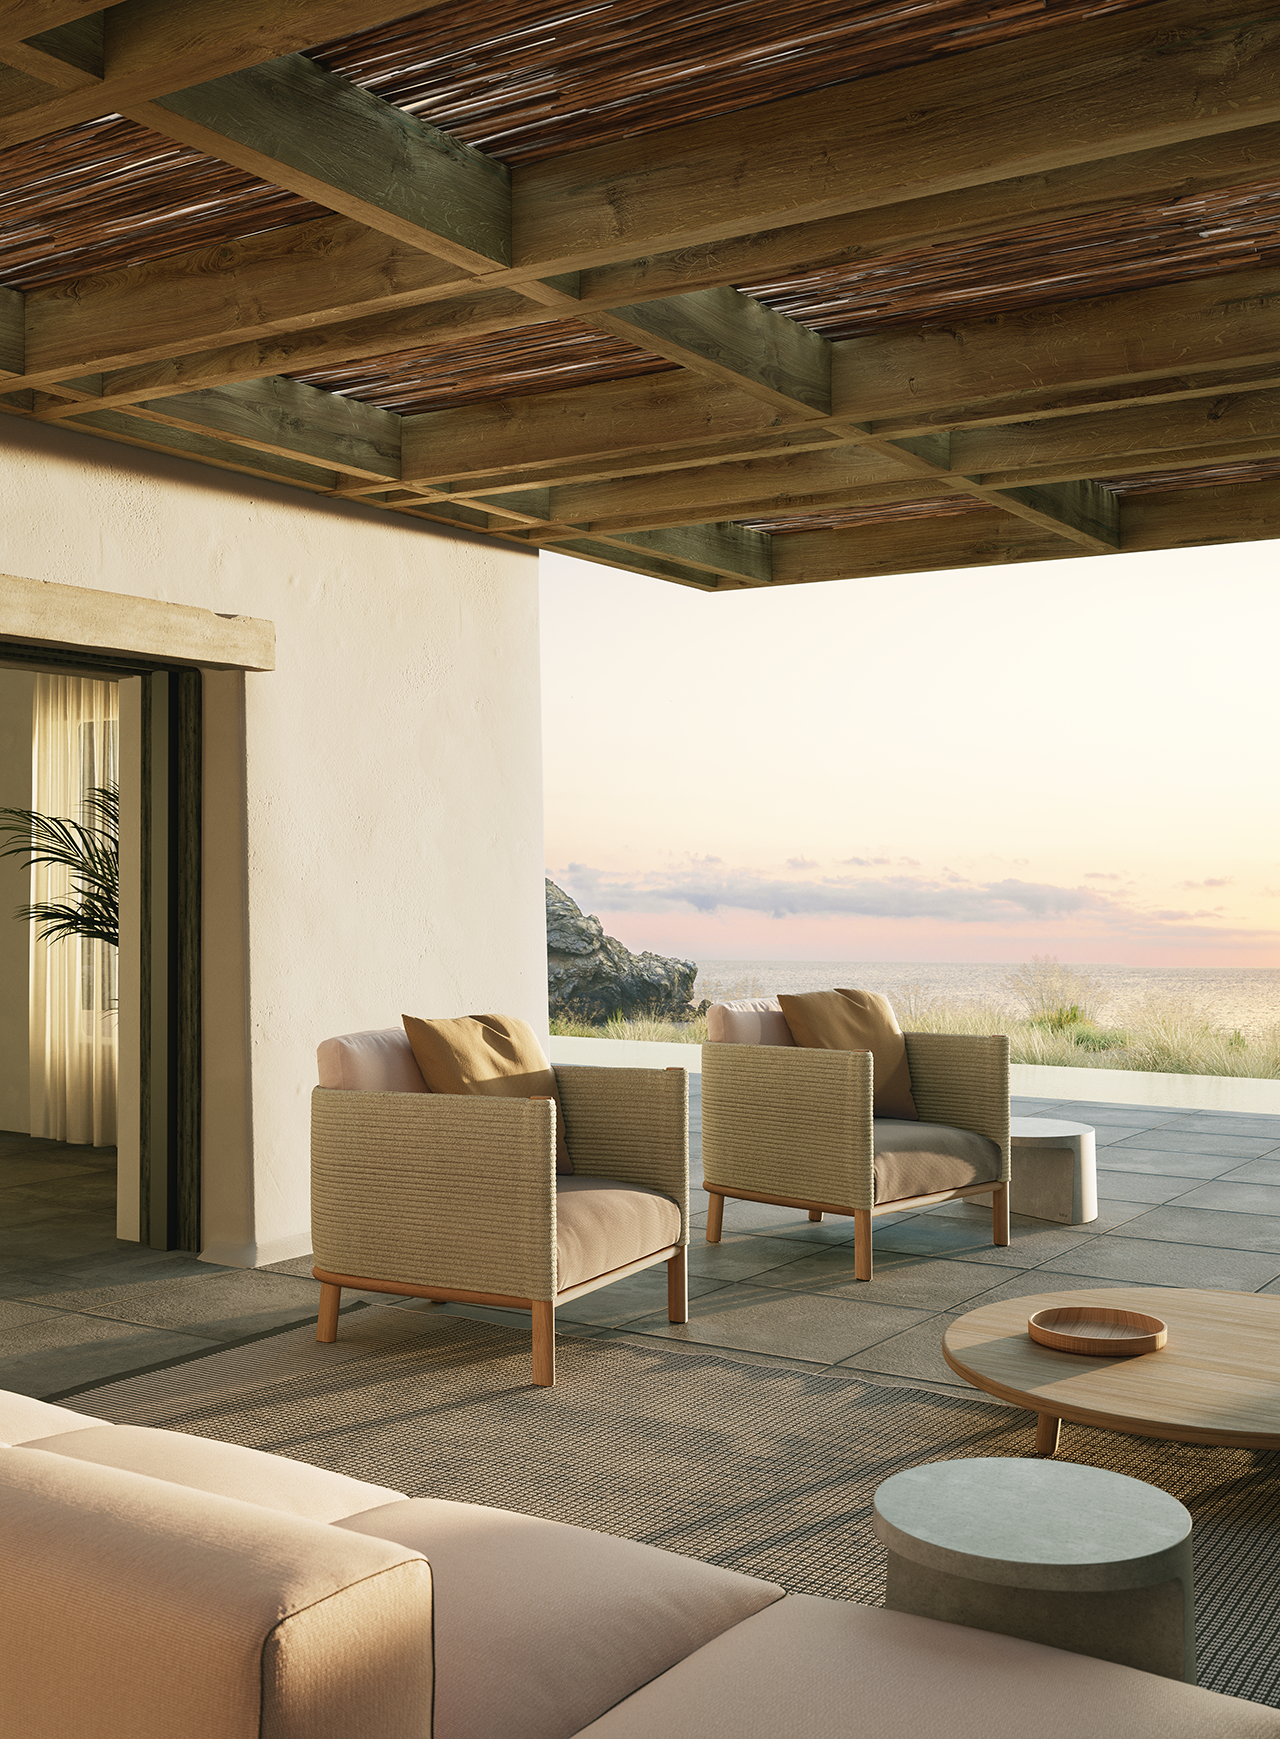 two boxy outdoor chairs sitting on a covered outside patio